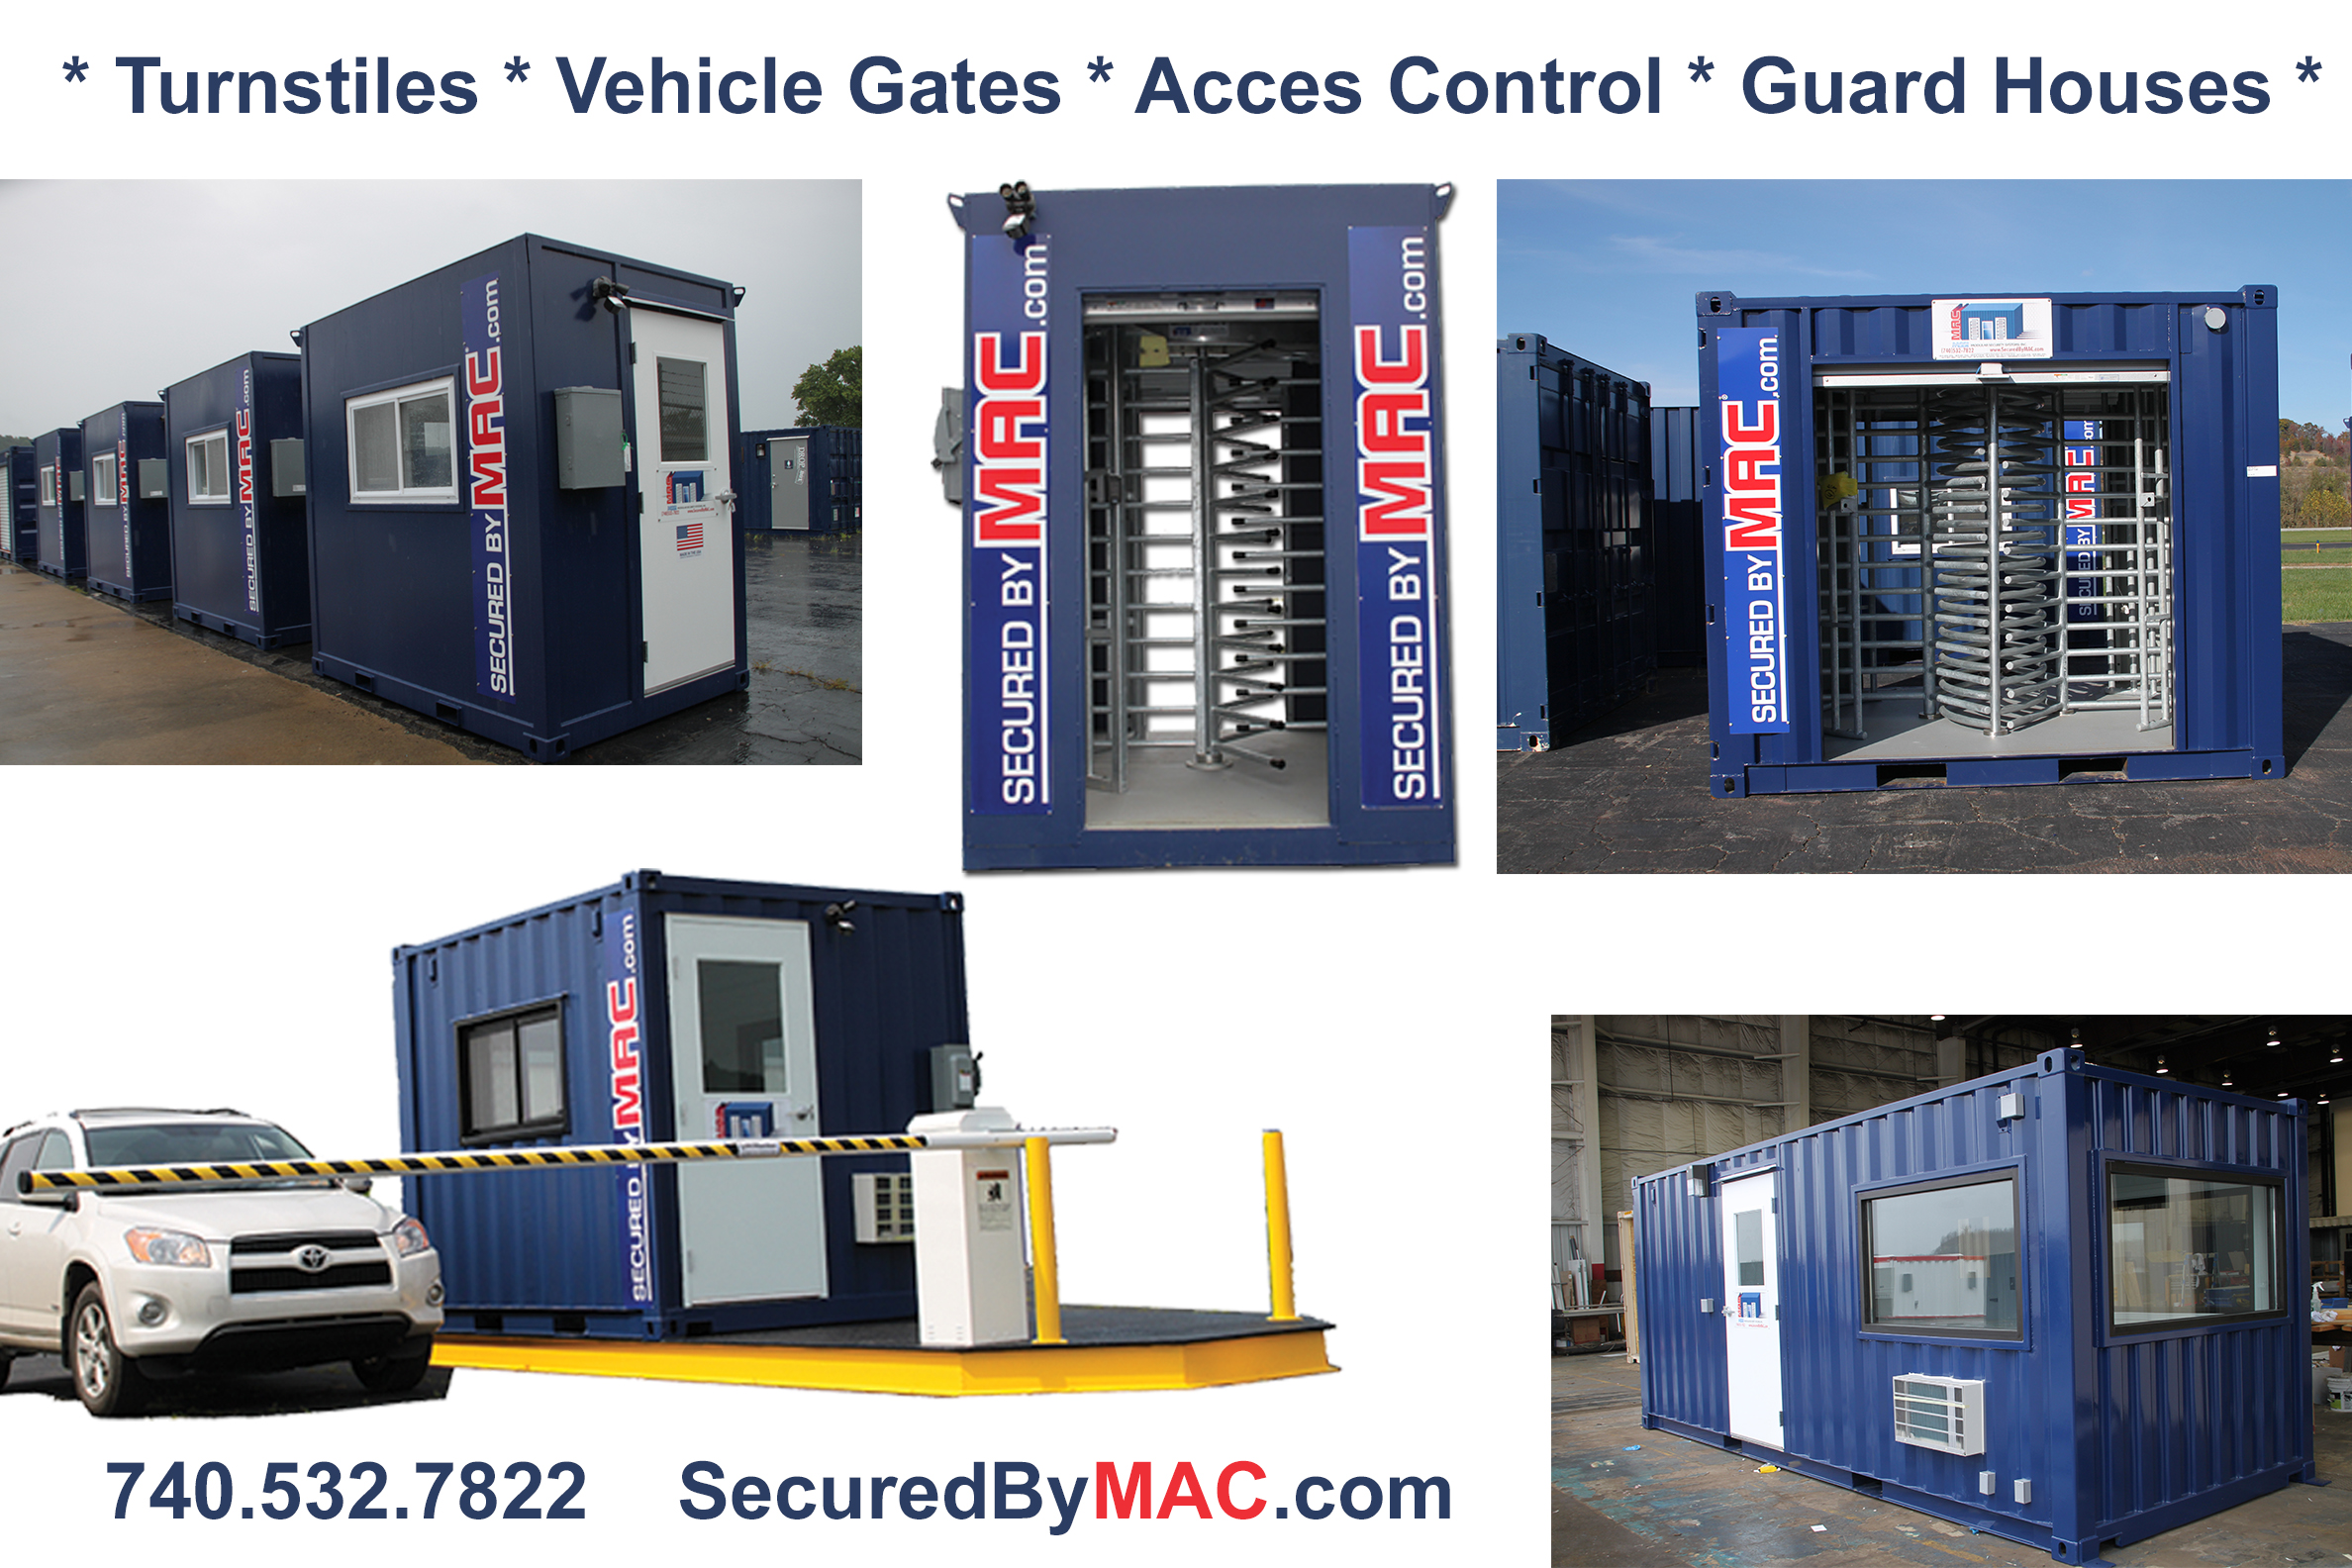 MSSI, Turnstile, Turnstiles, access control, Modular Security Systems Inc, portable guard house, vehicle gate, vehicle gates